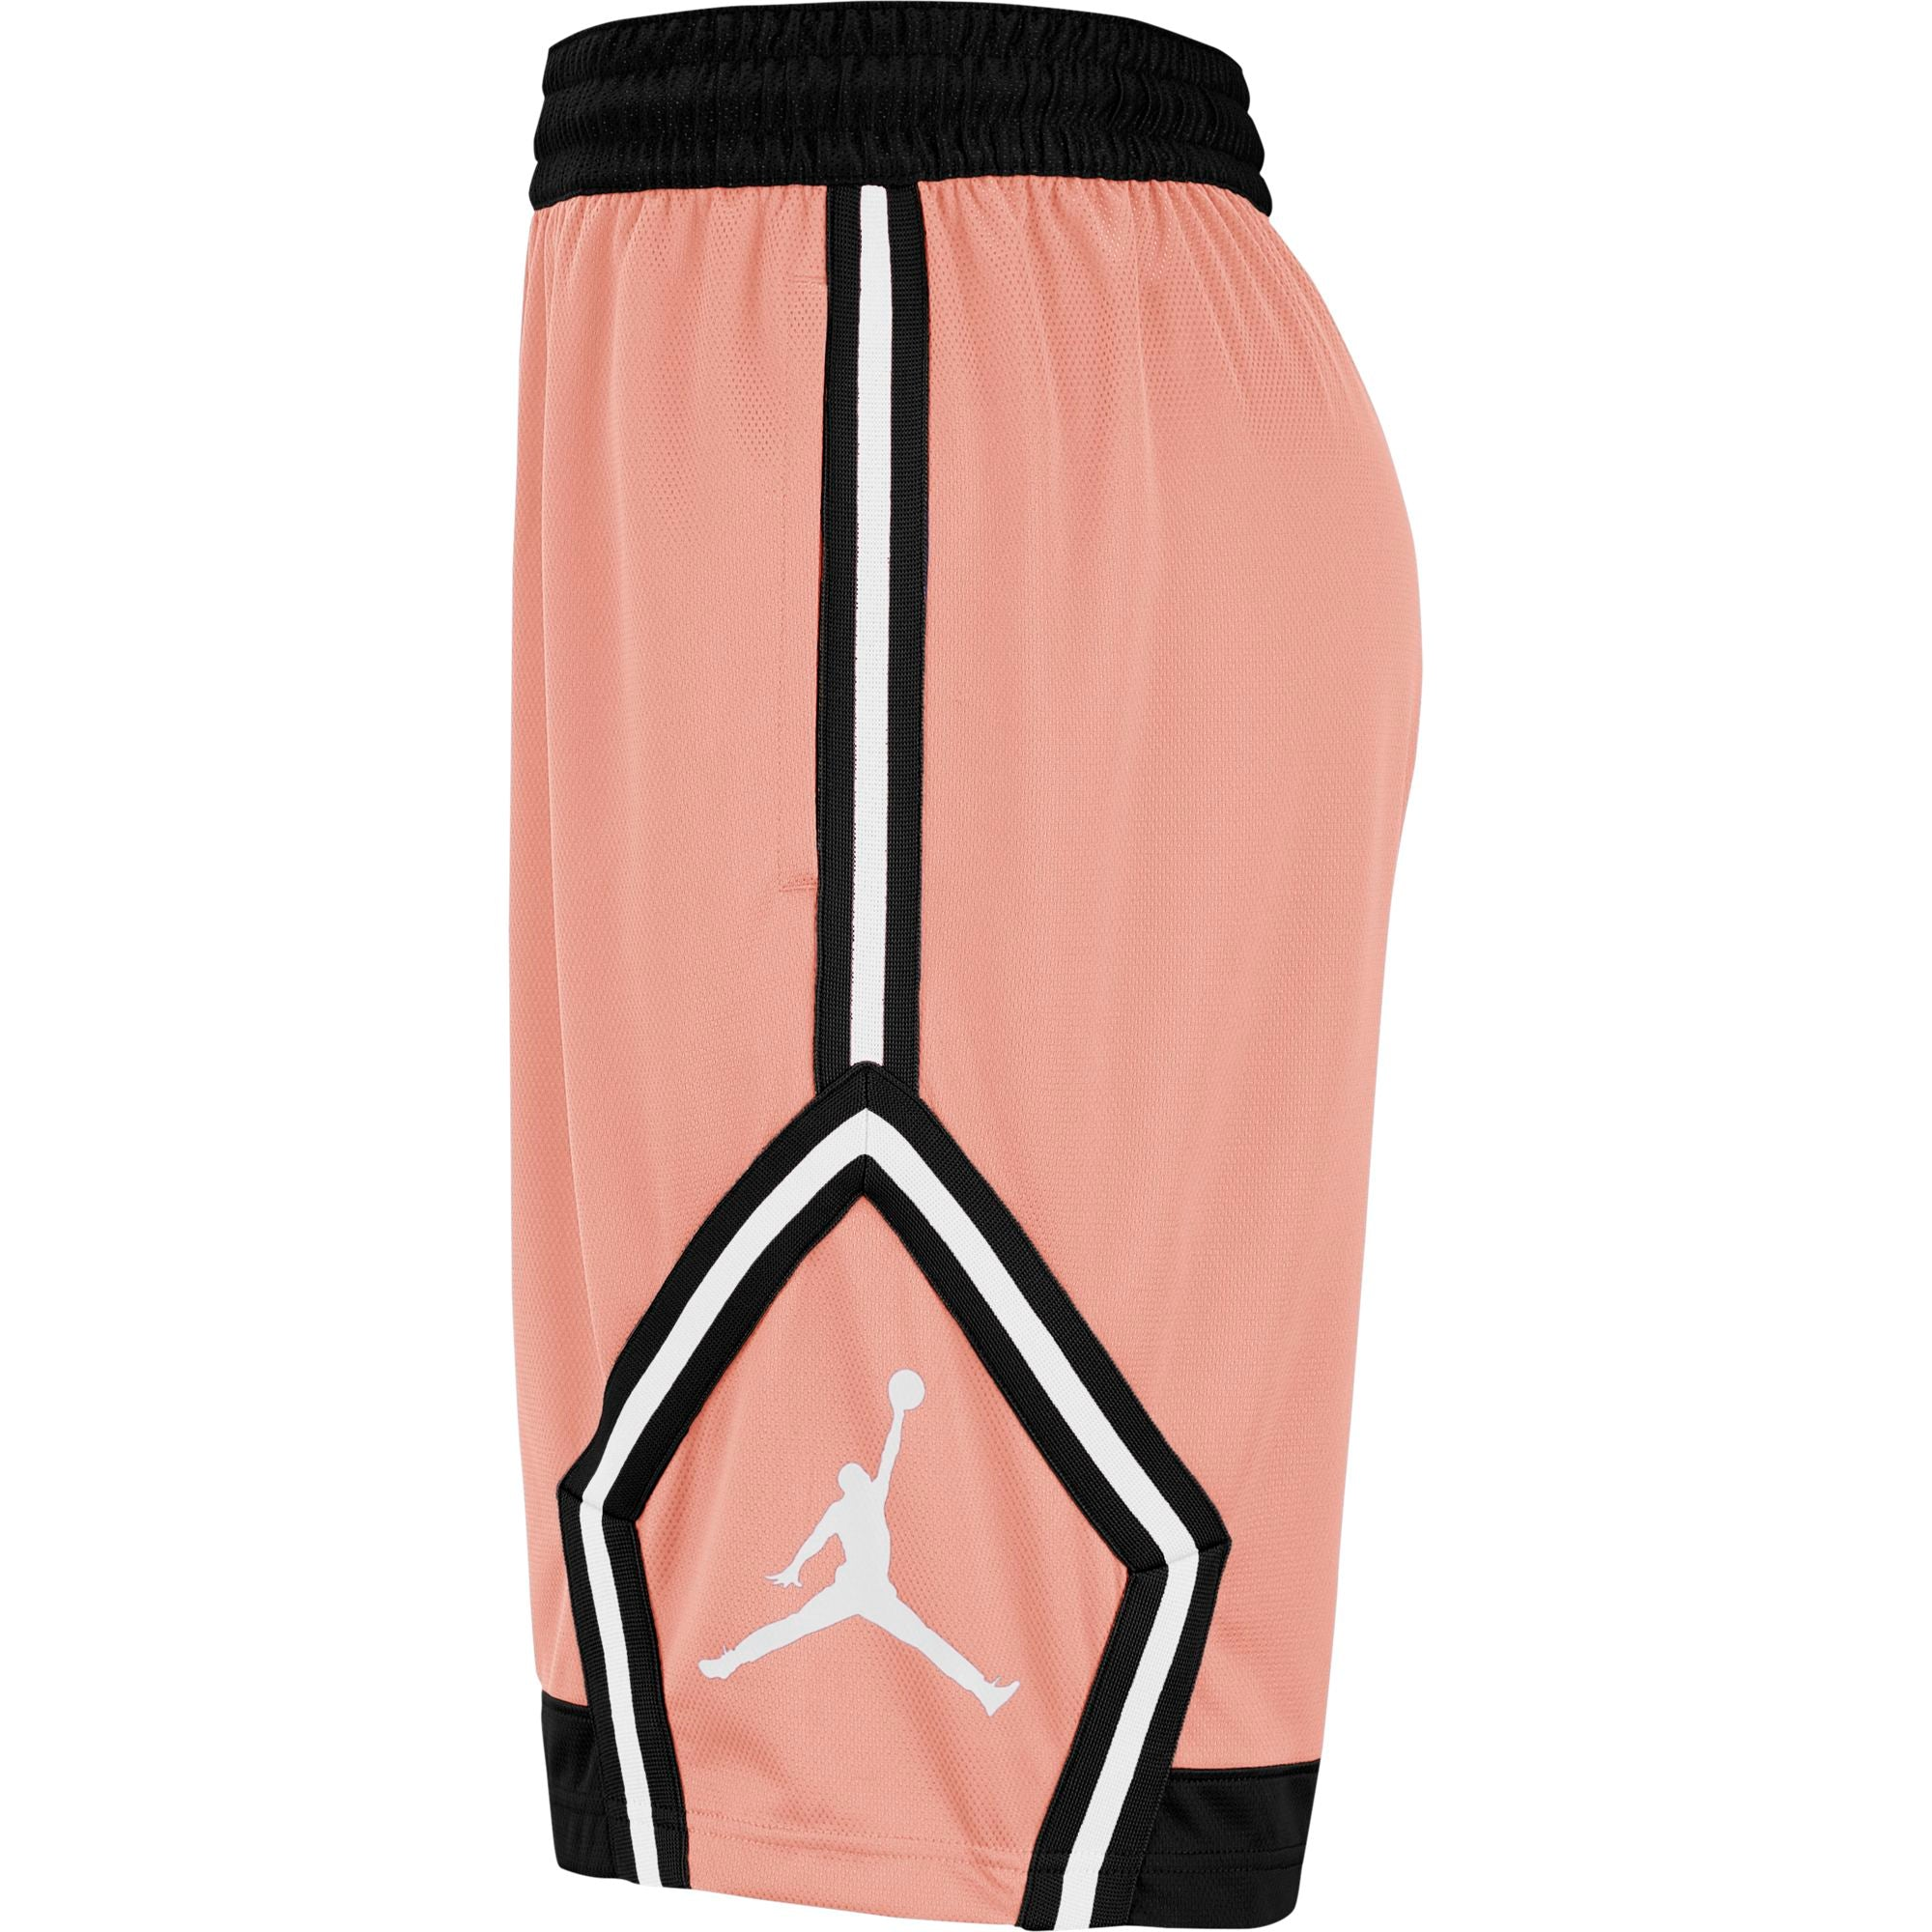 Nike Jordan Jumpman Diamond Basketball Shorts - Coral Stardust/Black